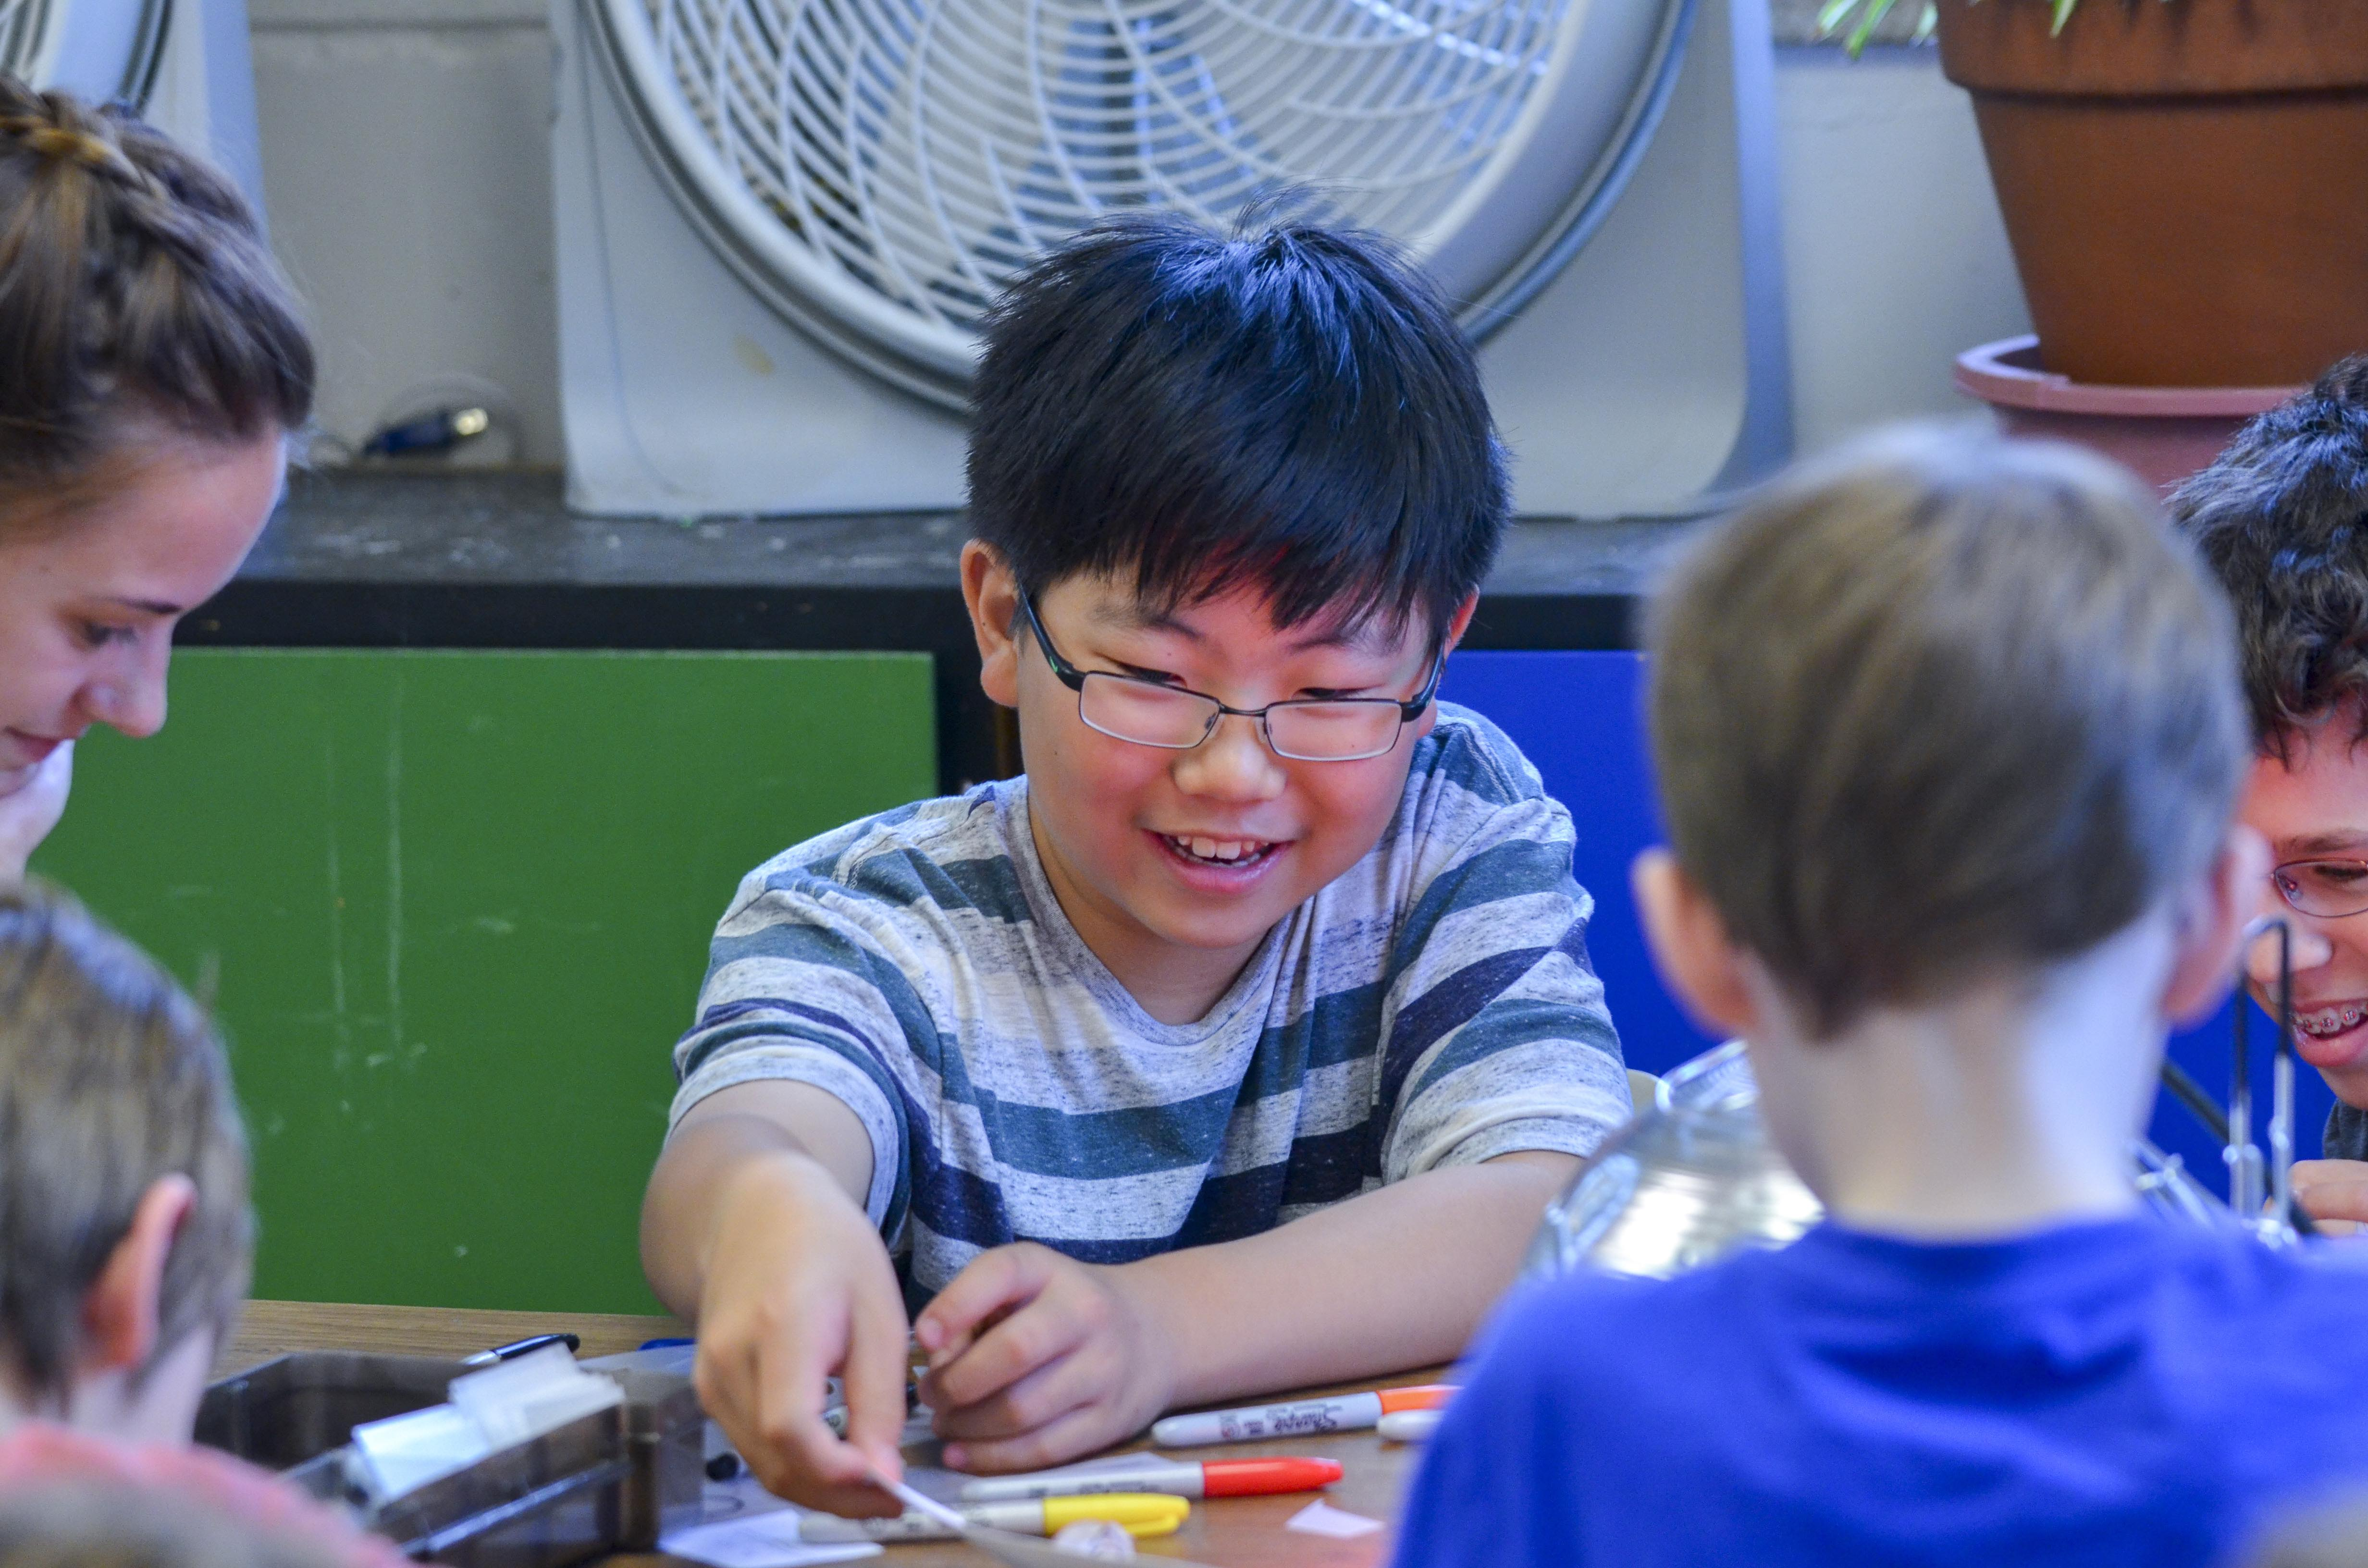 Eliot Hwang, 11, experiments with making bending polymers under a heat lamp at the CU Science Discovery summer camp.